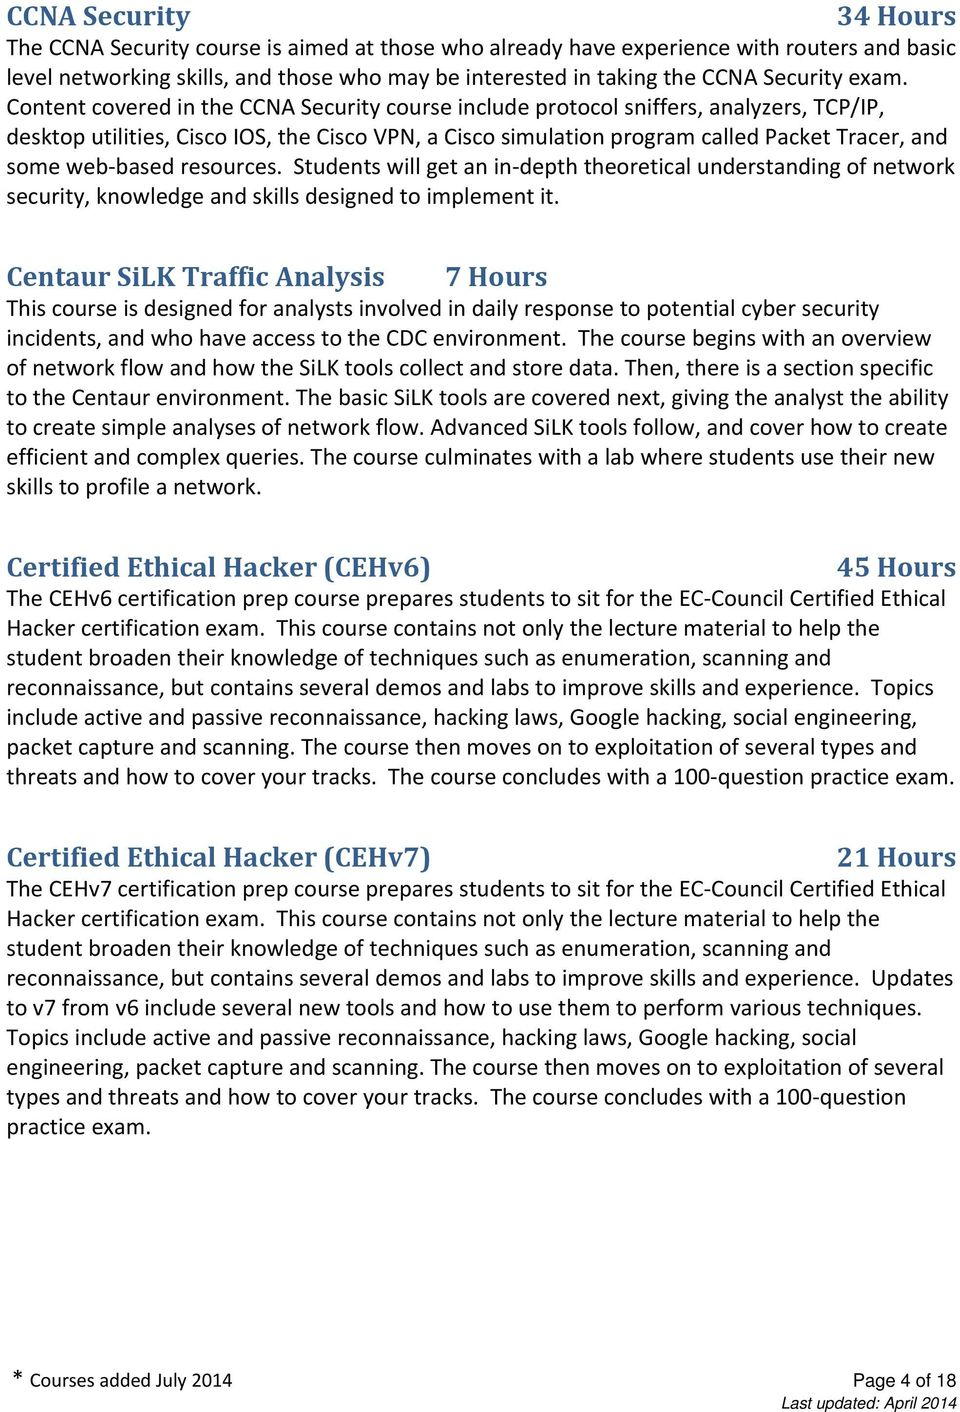 Content covered in the CCNA Security course include protocol sniffers, analyzers, TCP/IP, desktop utilities, Cisco IOS, the Cisco VPN, a Cisco simulation program called Packet Tracer, and some web